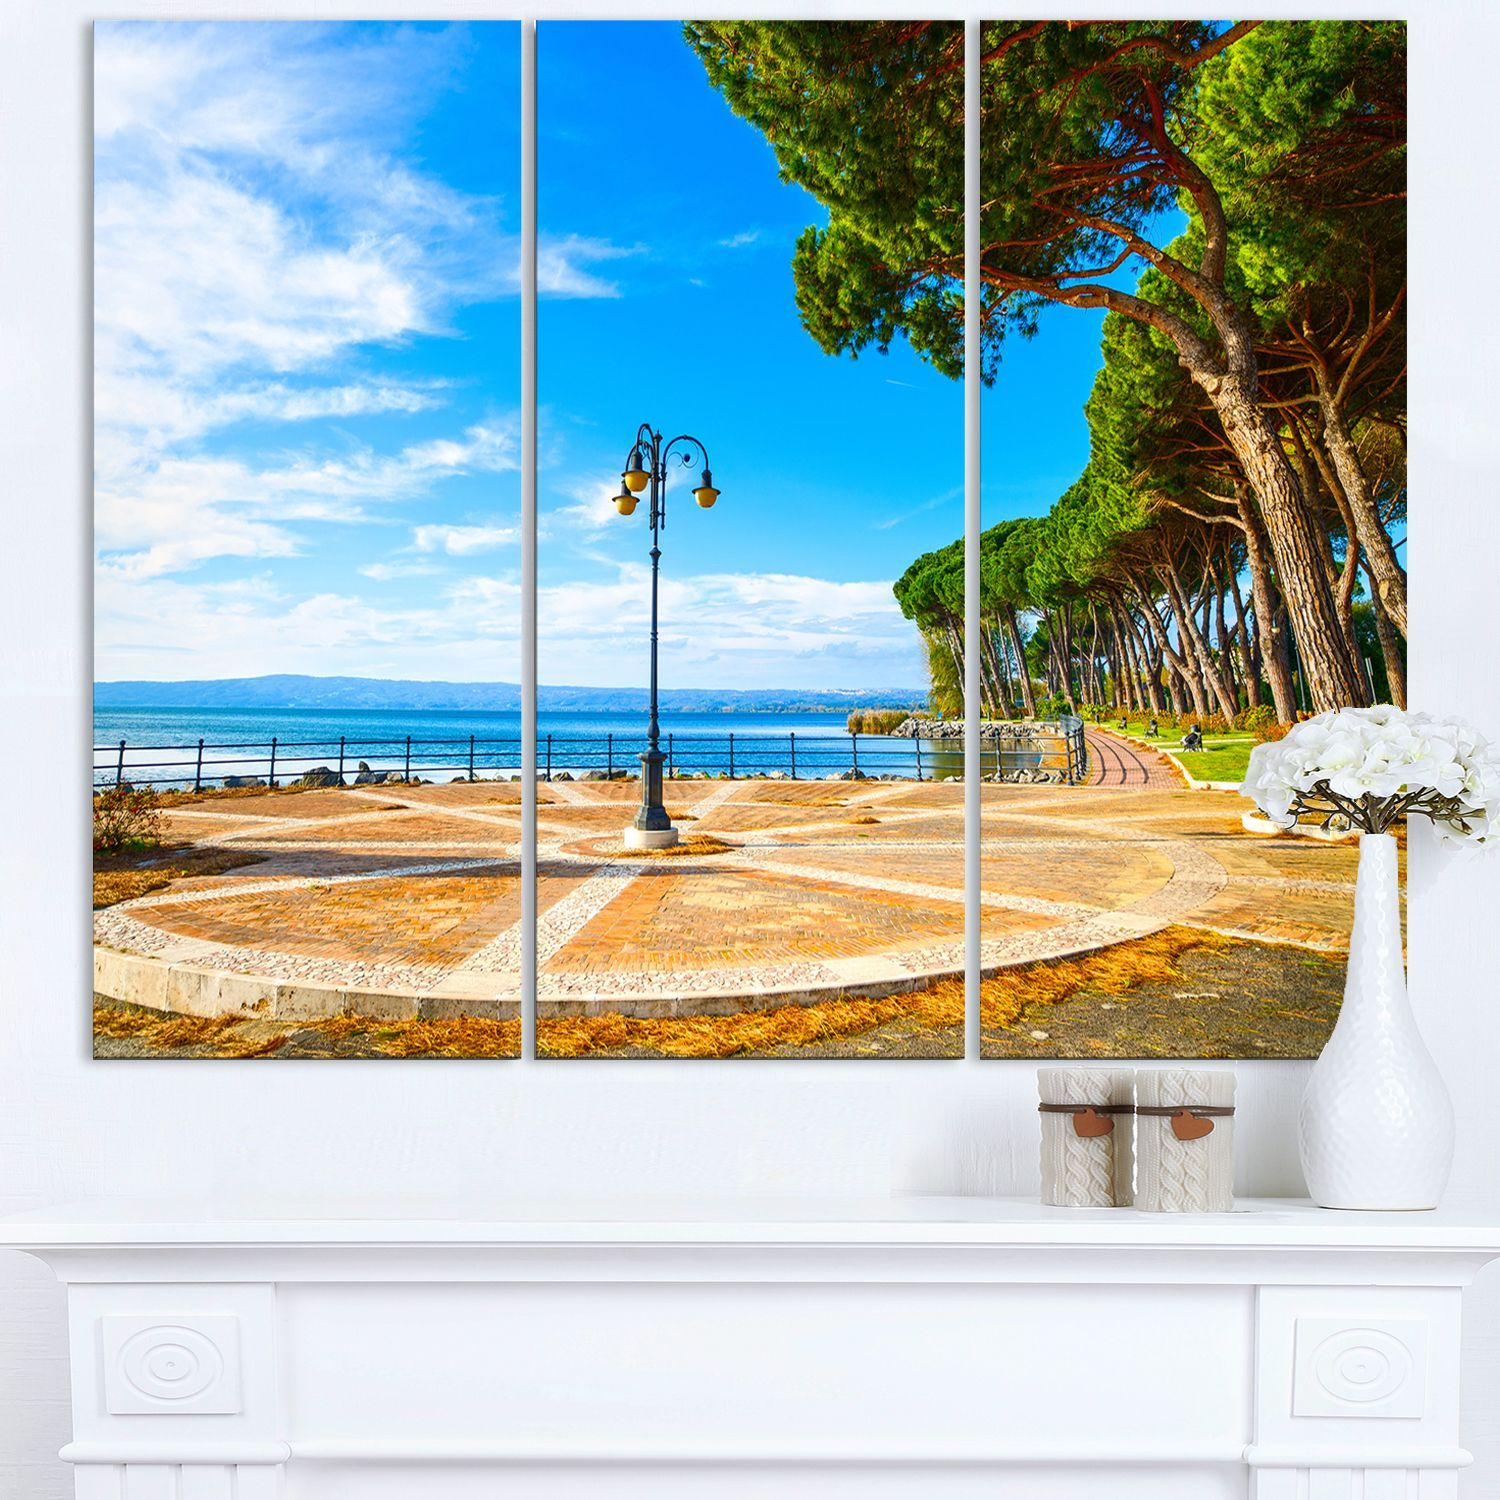 Esplanade and Pine Trees in Bolsena - Oversized Landscape Wall Art Print